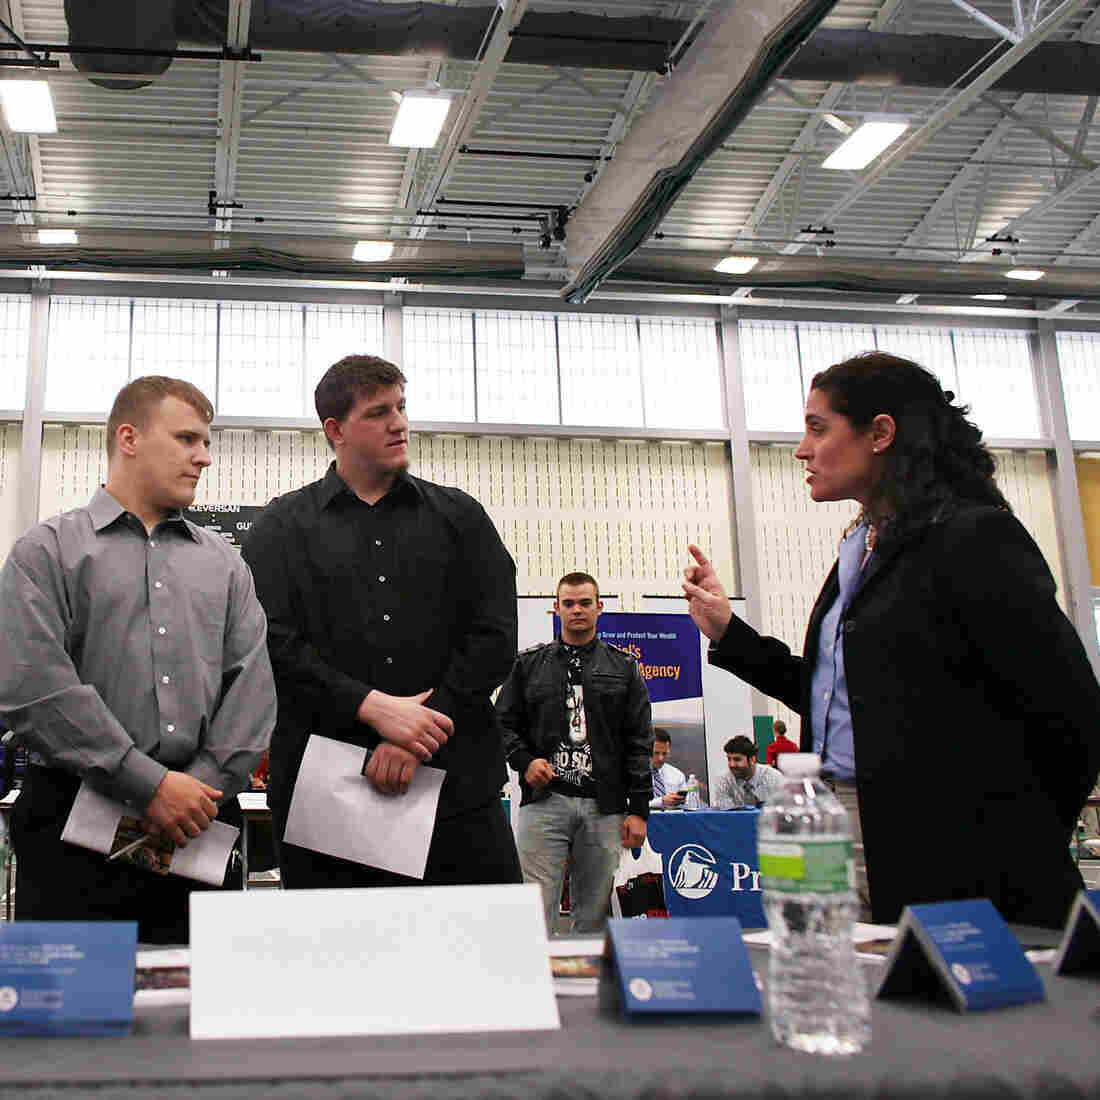 Military veterans Kris Hummel (l) and Shane Foley, speak with a TSA representative at a May 15, 2012 job fair in Utica, NY.